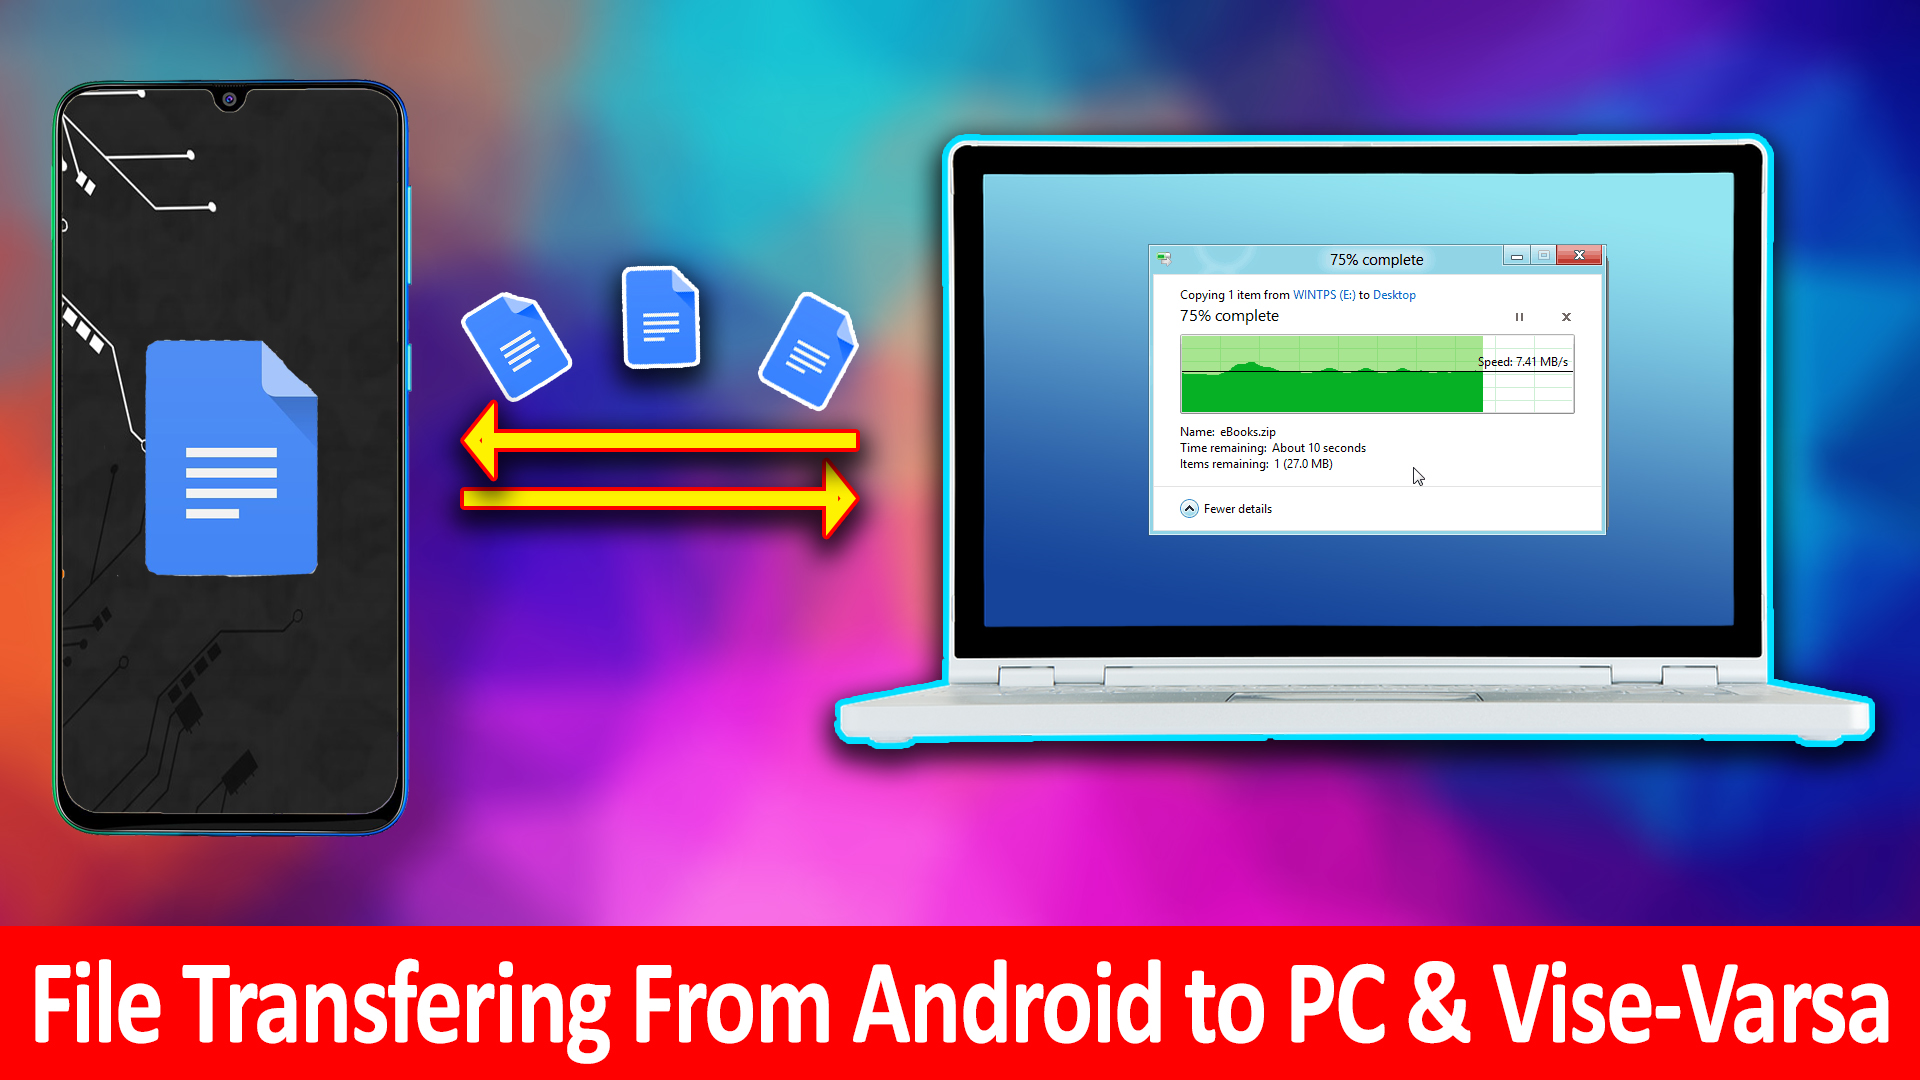 How to transfer files from Android to PC?